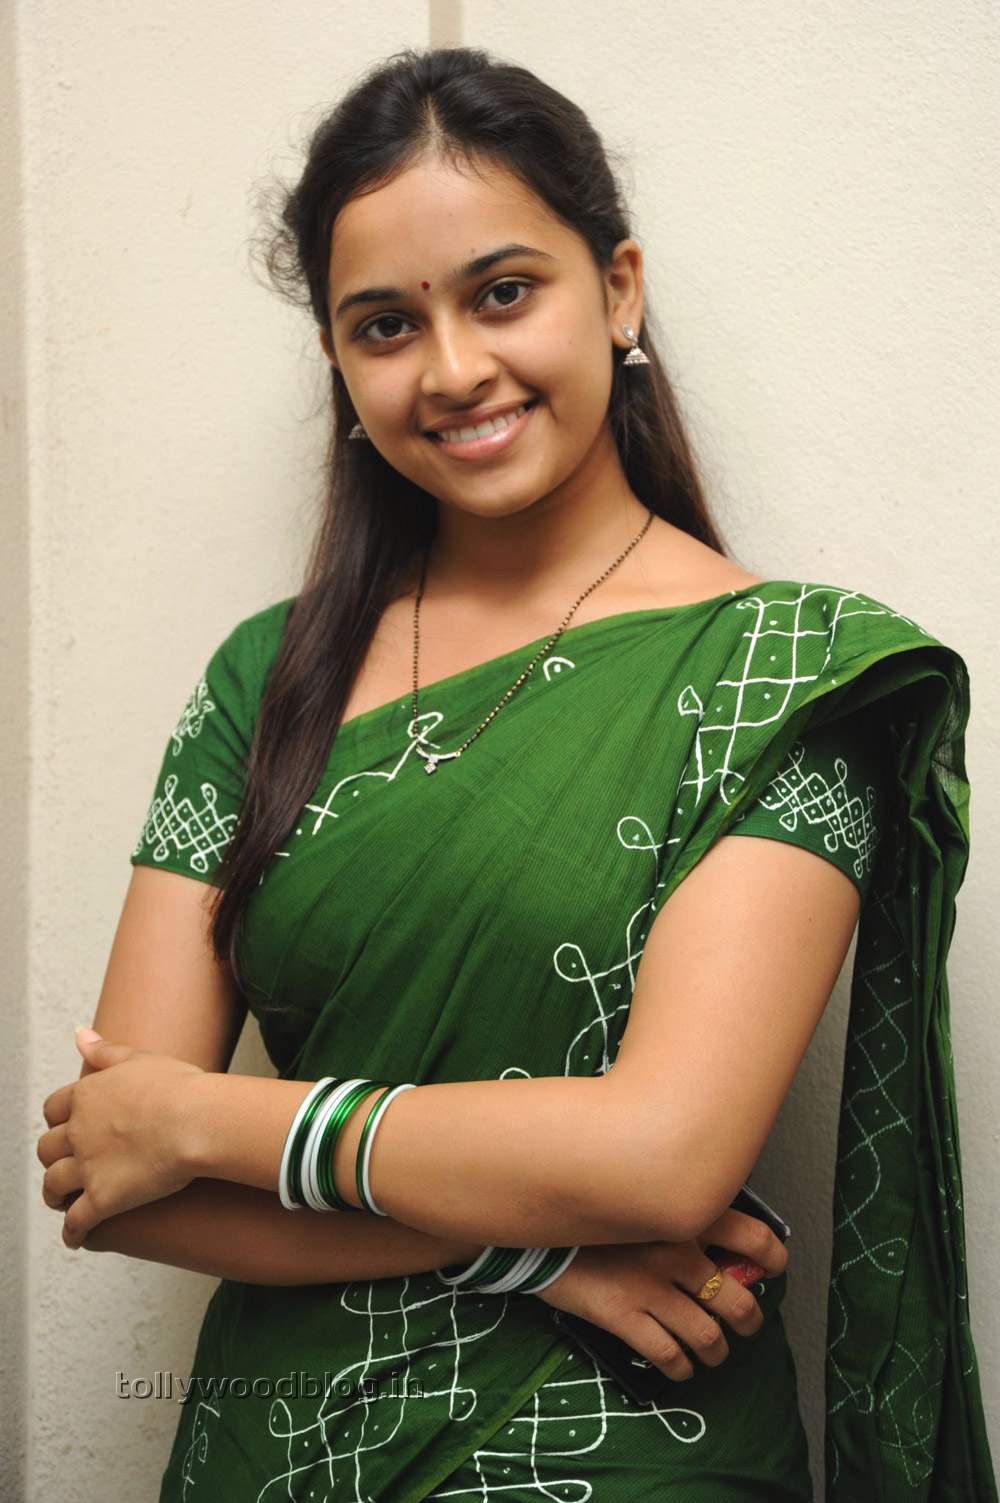 Actress Sri Divya Photos: Mallela Theeramlo Sirimalle Puvvu Heroine Sri Divya Photos